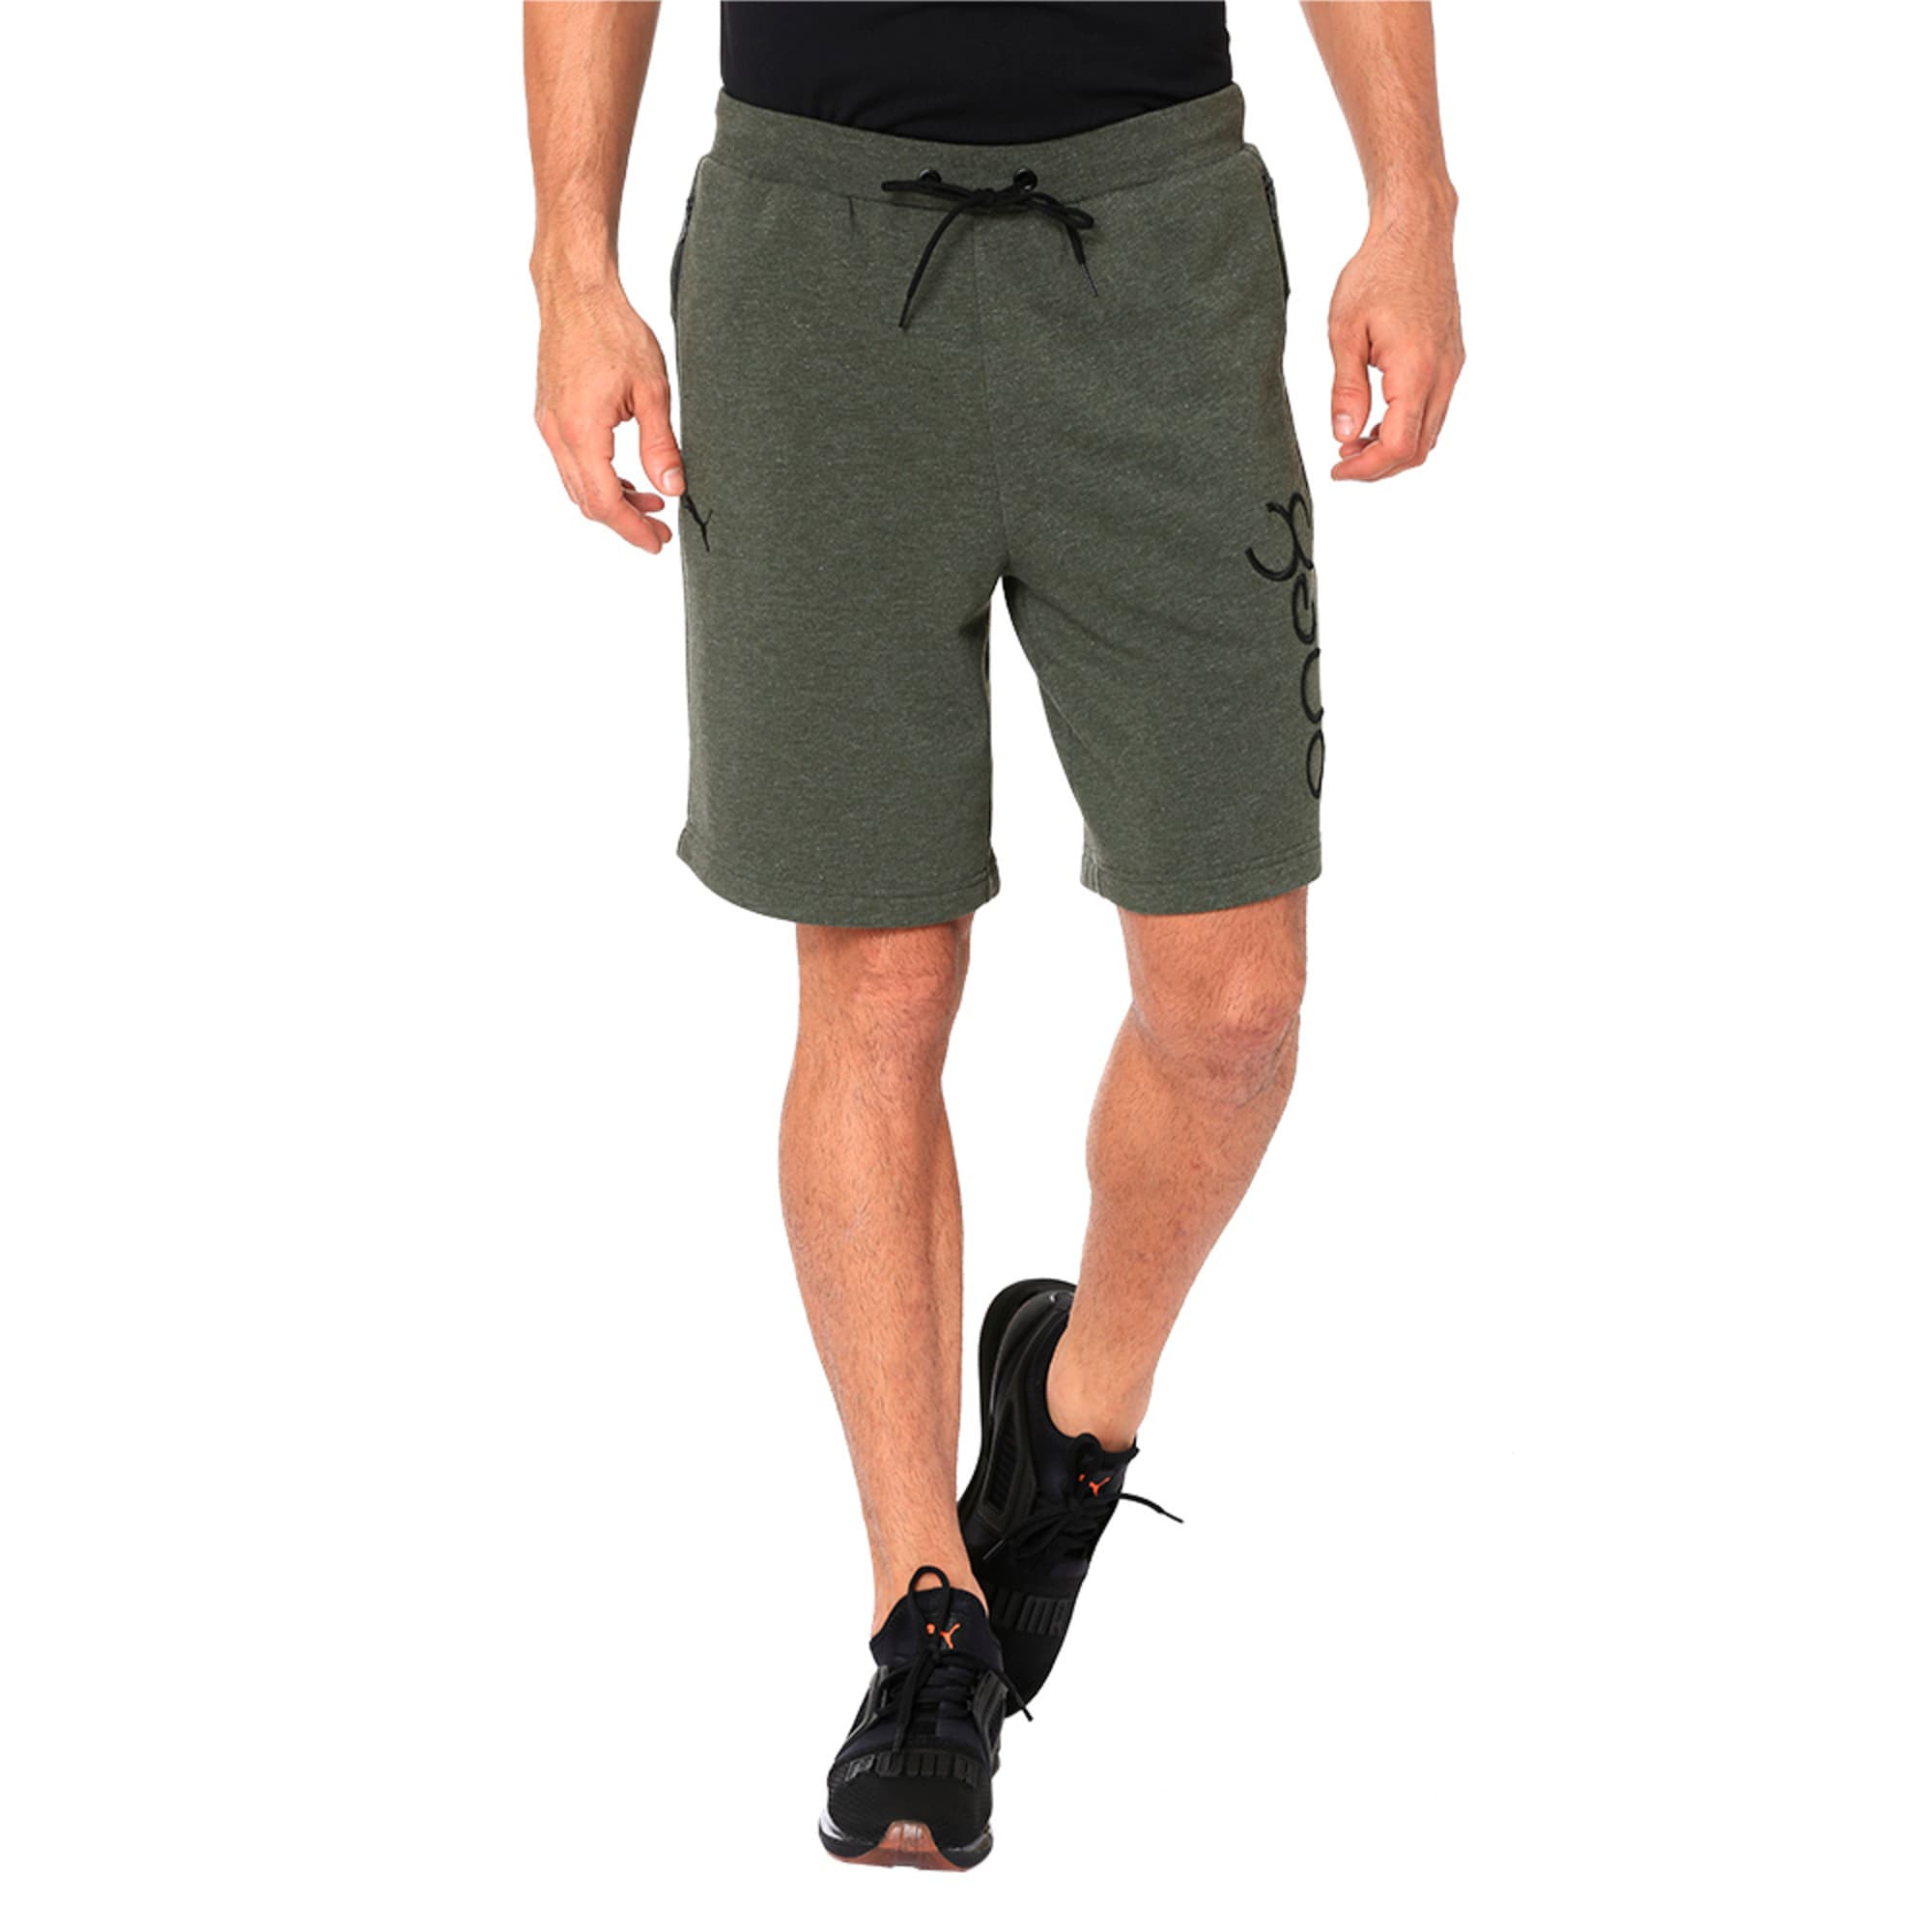 Thumbnail 4 of One8 VK Men's Sweat Shorts, Forest Night Heather, medium-IND